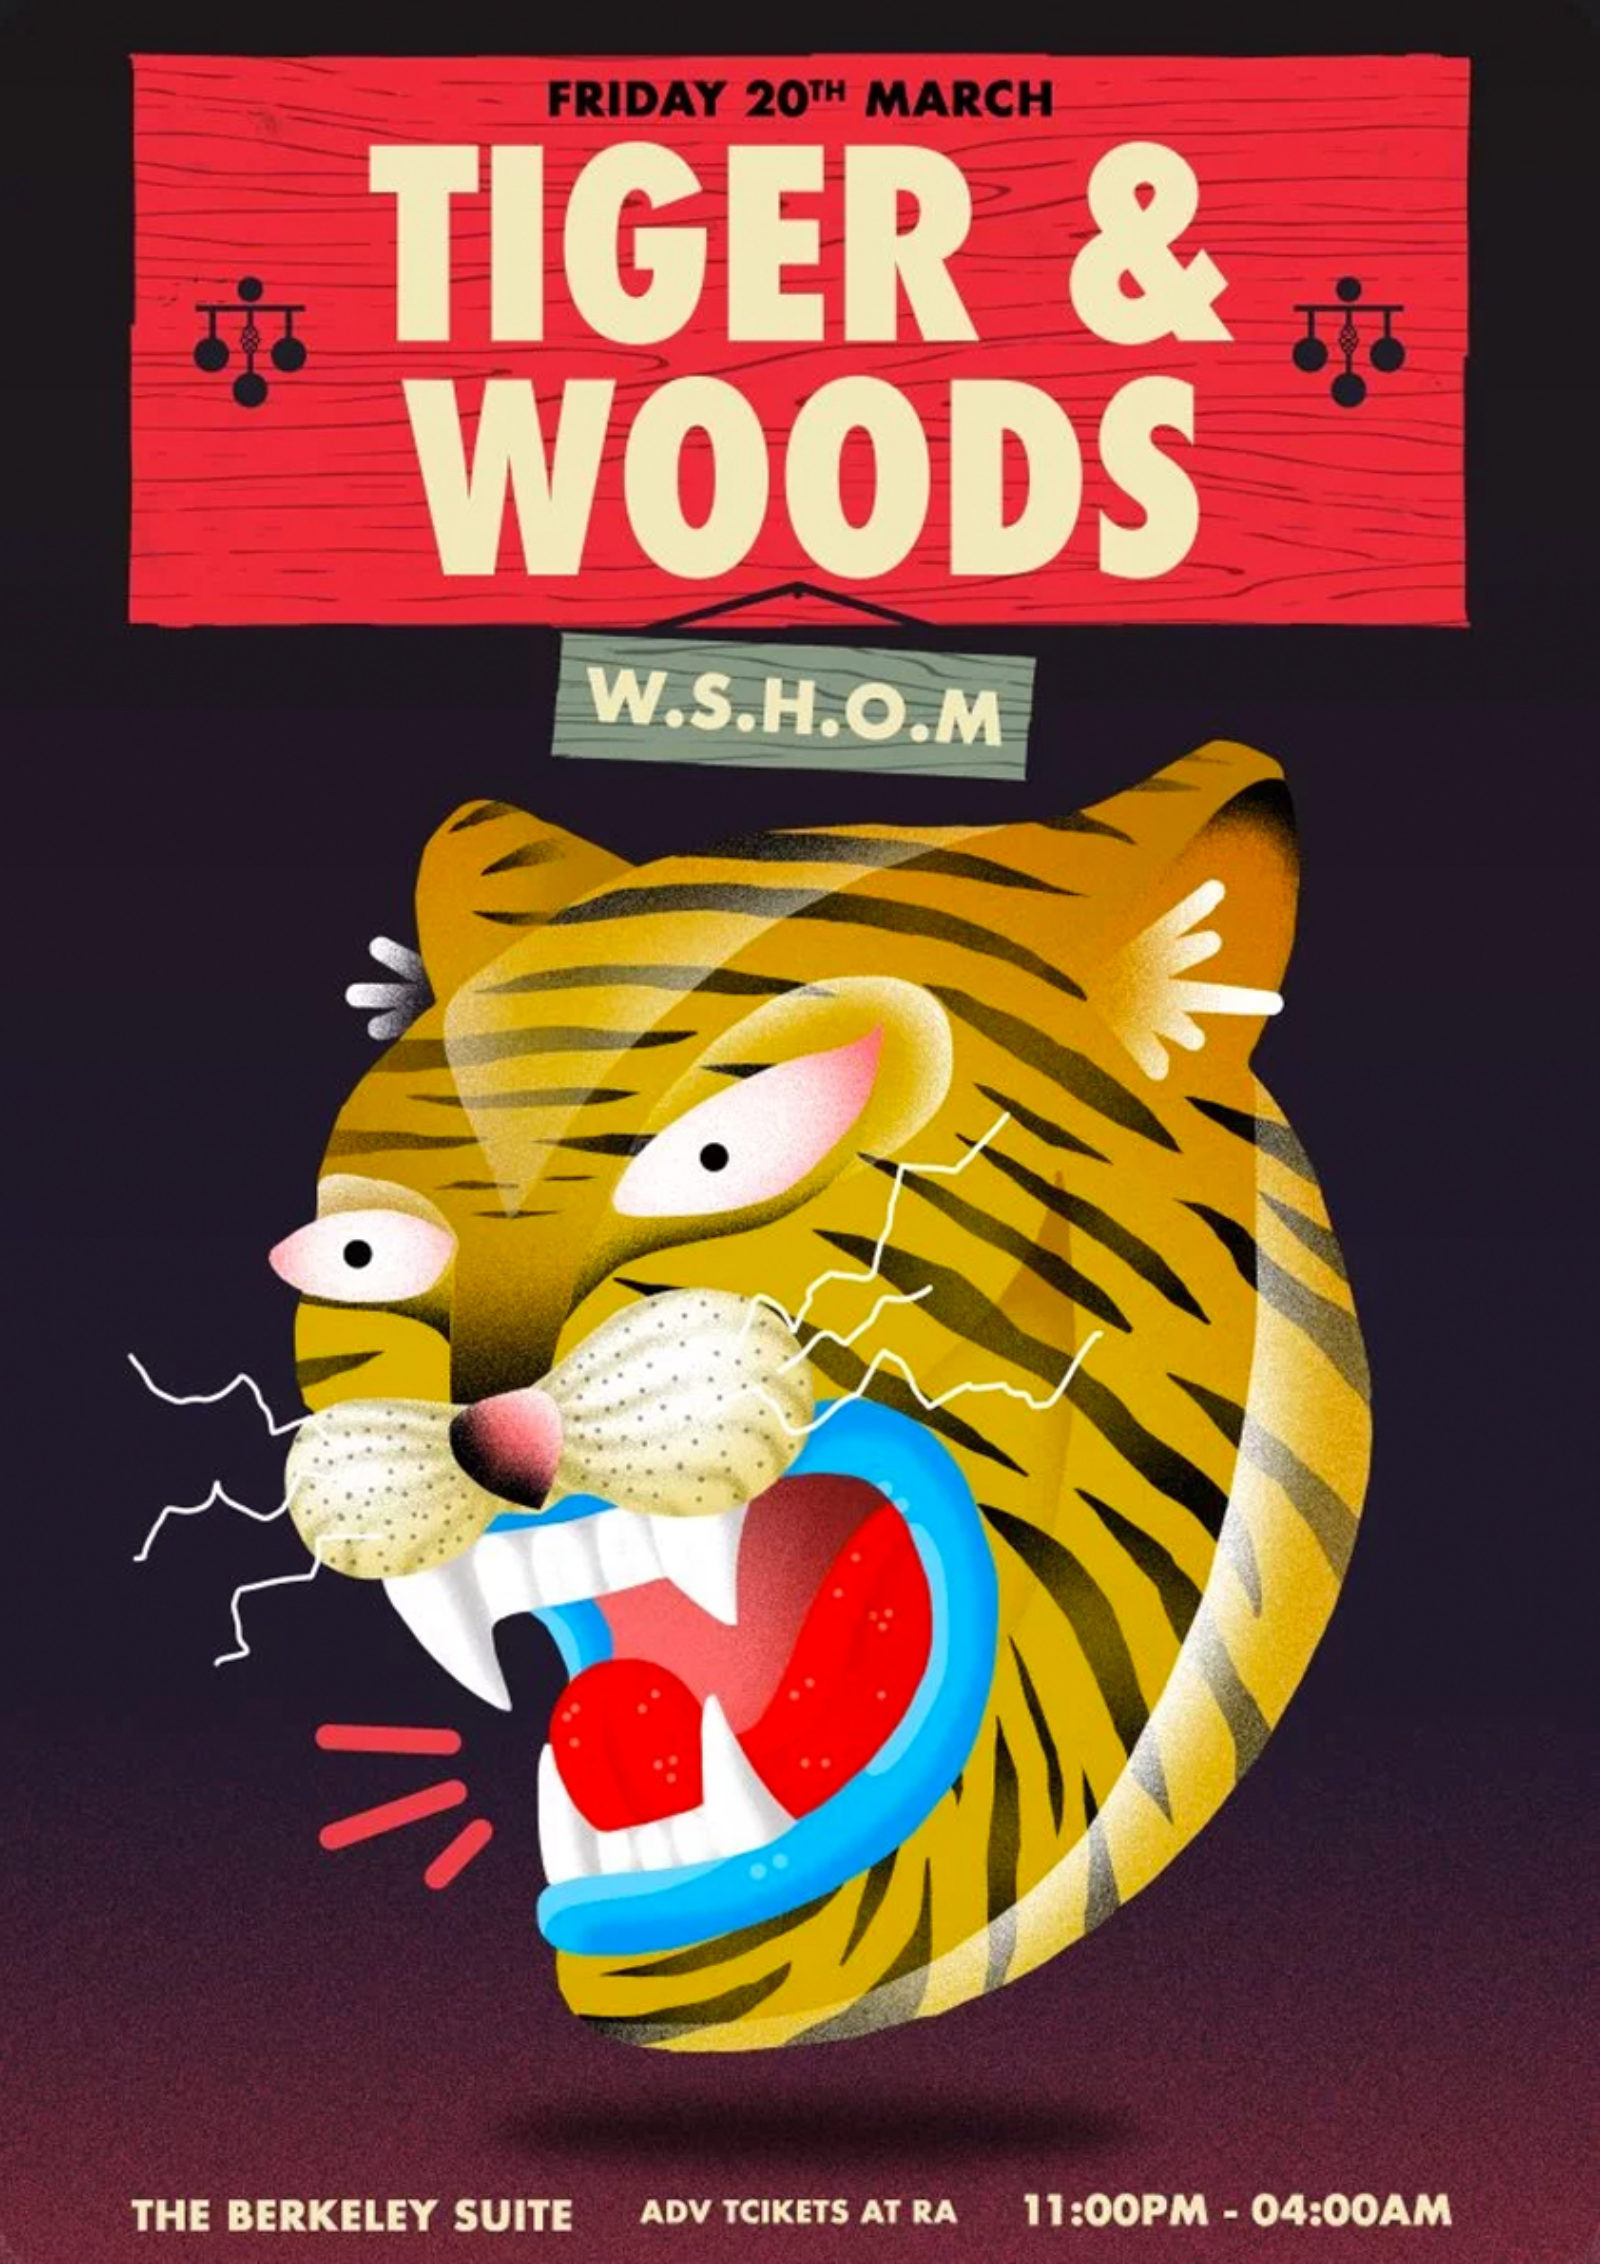 TIGER & WOODS + WSHOM